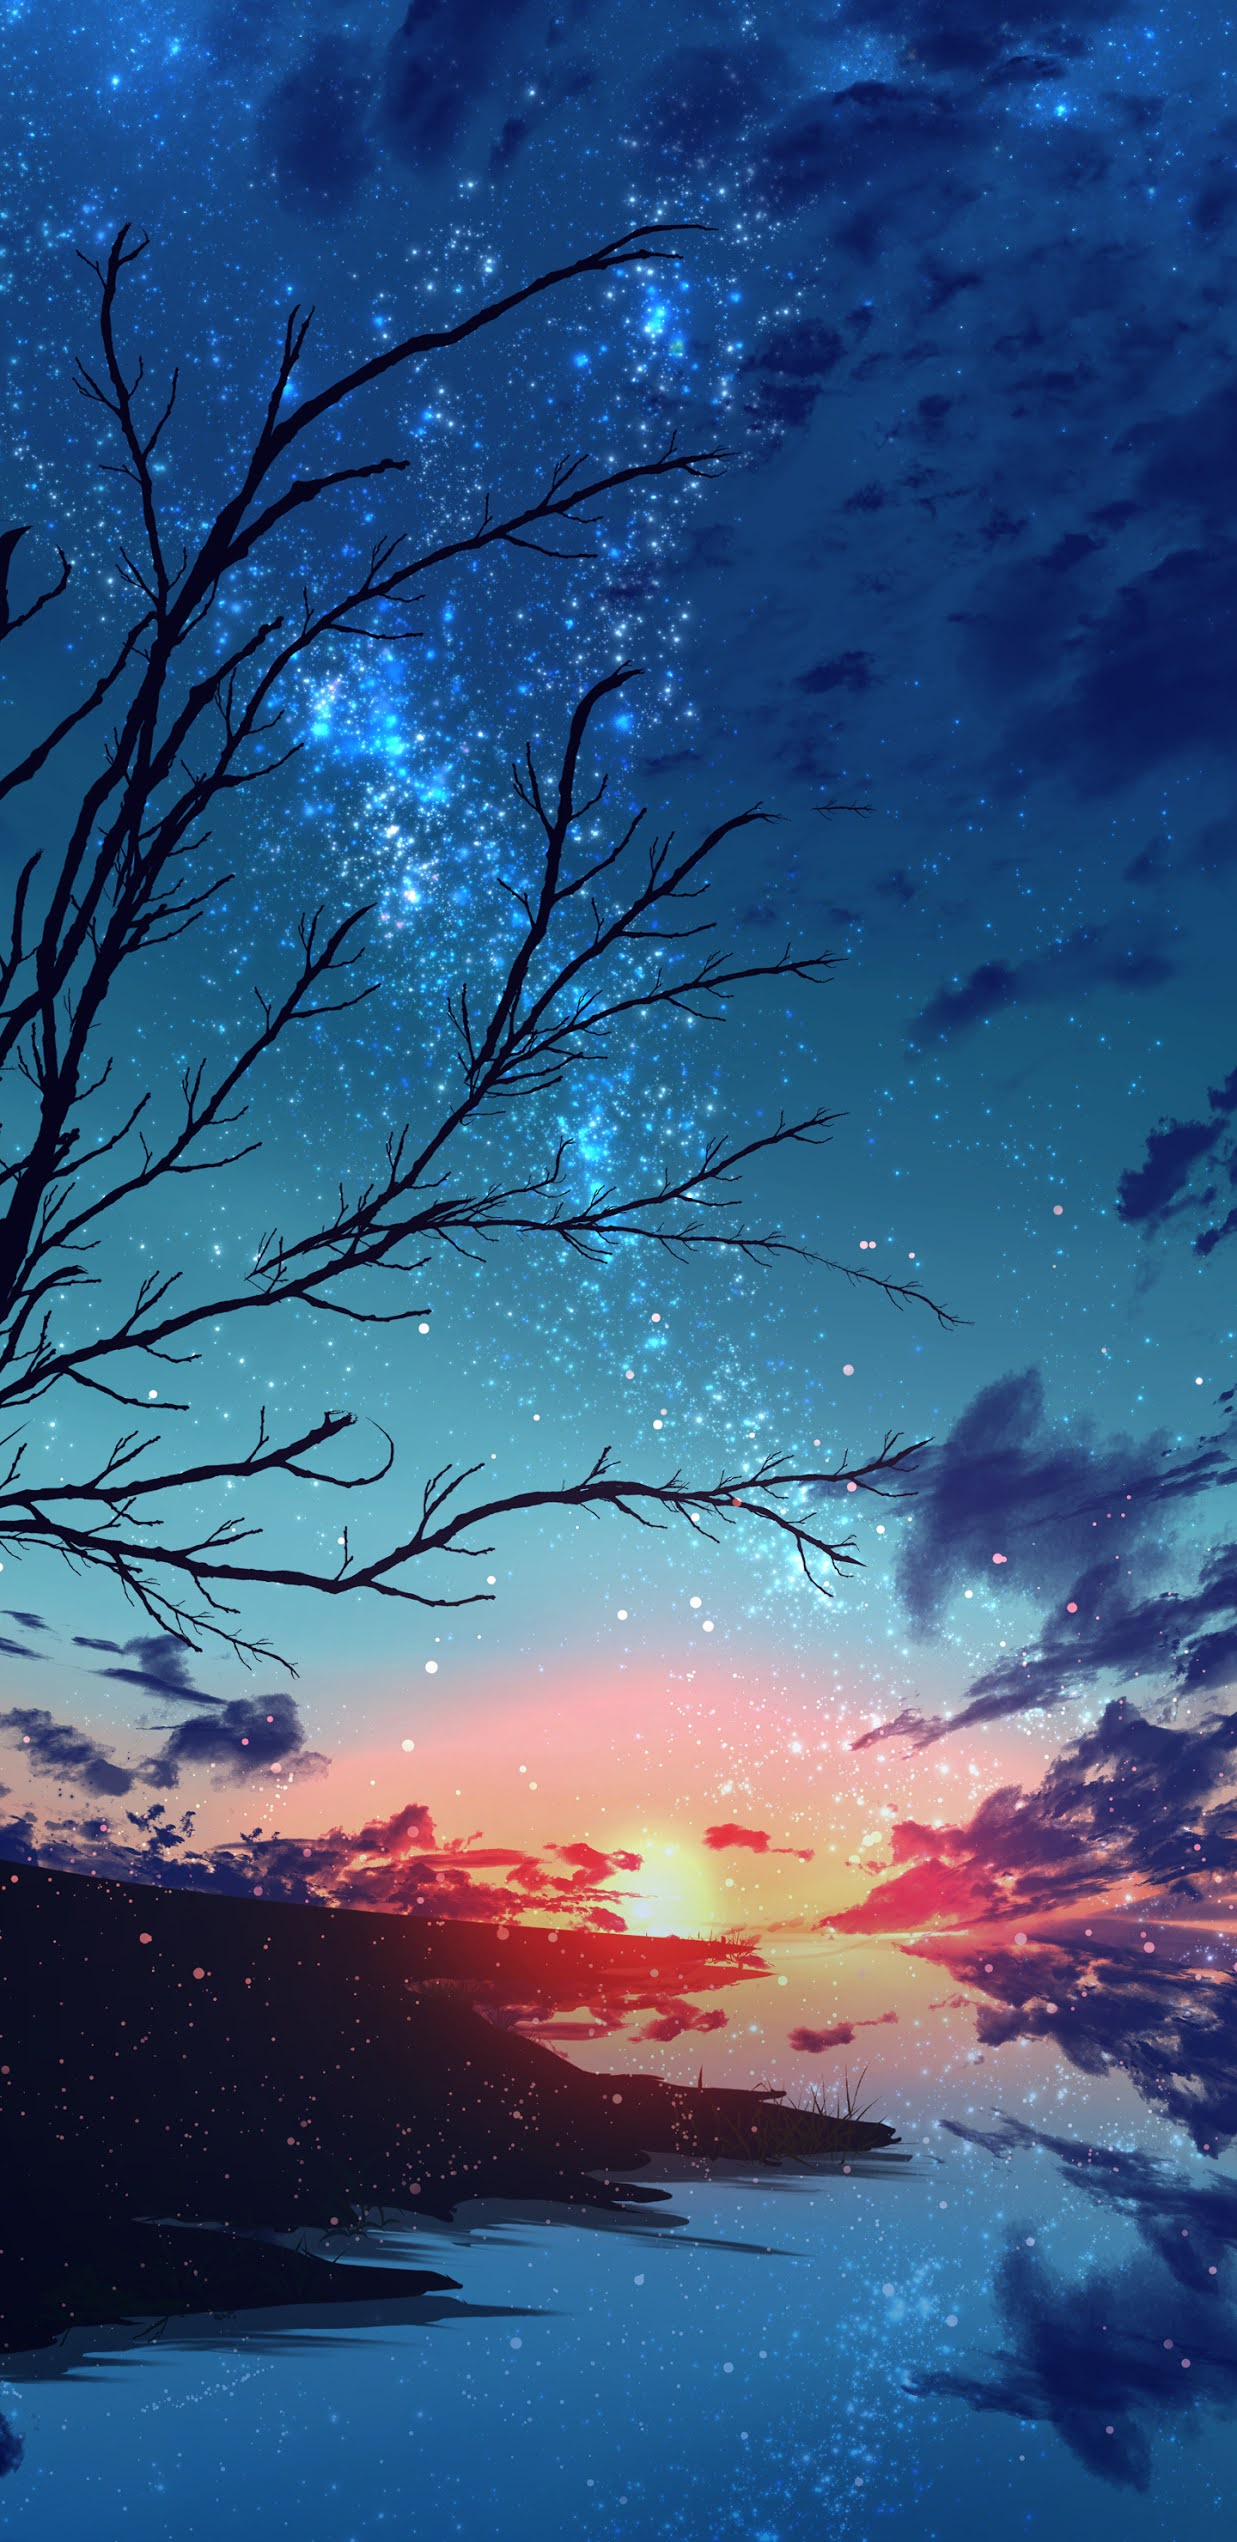 Sunset in the starry sky